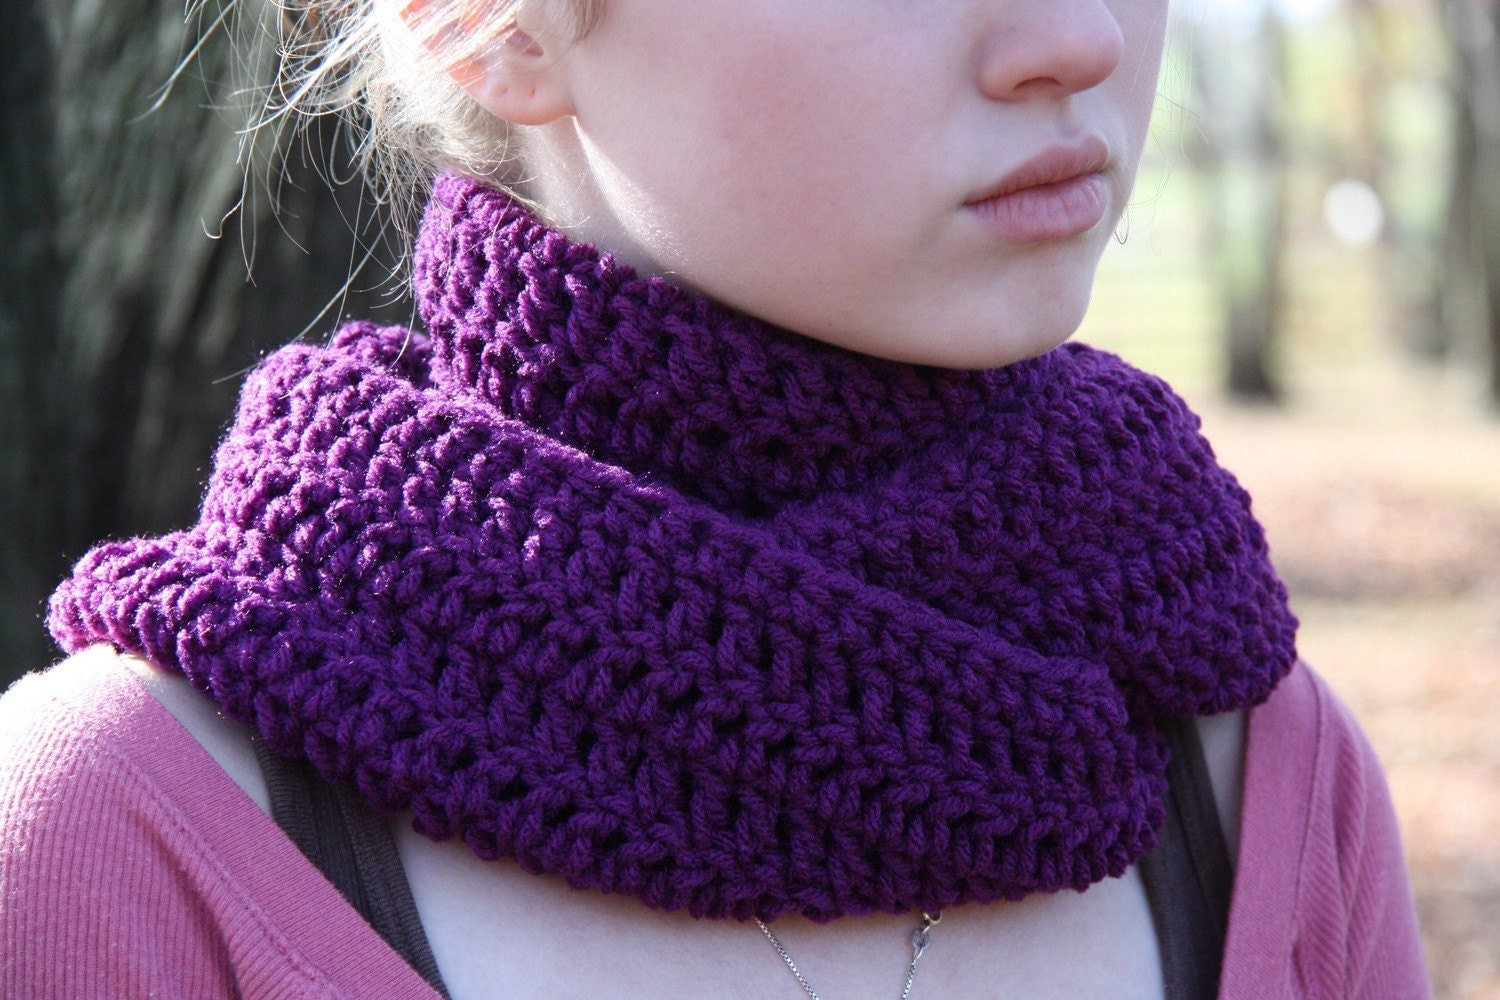 Dark Purple Crocheted Eternity Cowl Neck Scarf by HandmadeByLarrie Cowl Neck Scarves Crochet